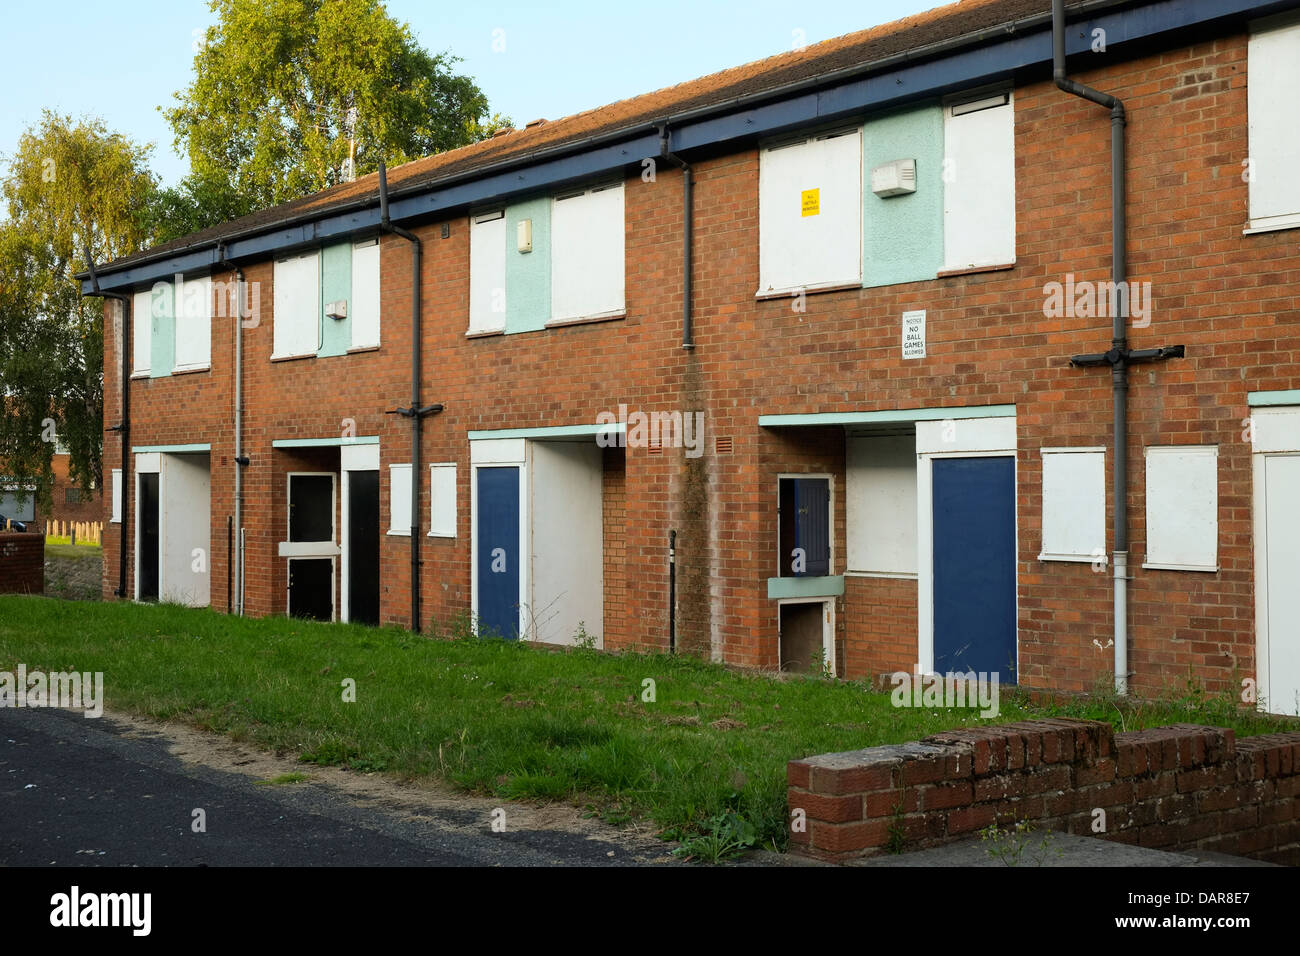 England, Manchester, derelict council home block in Islington district - Stock Image